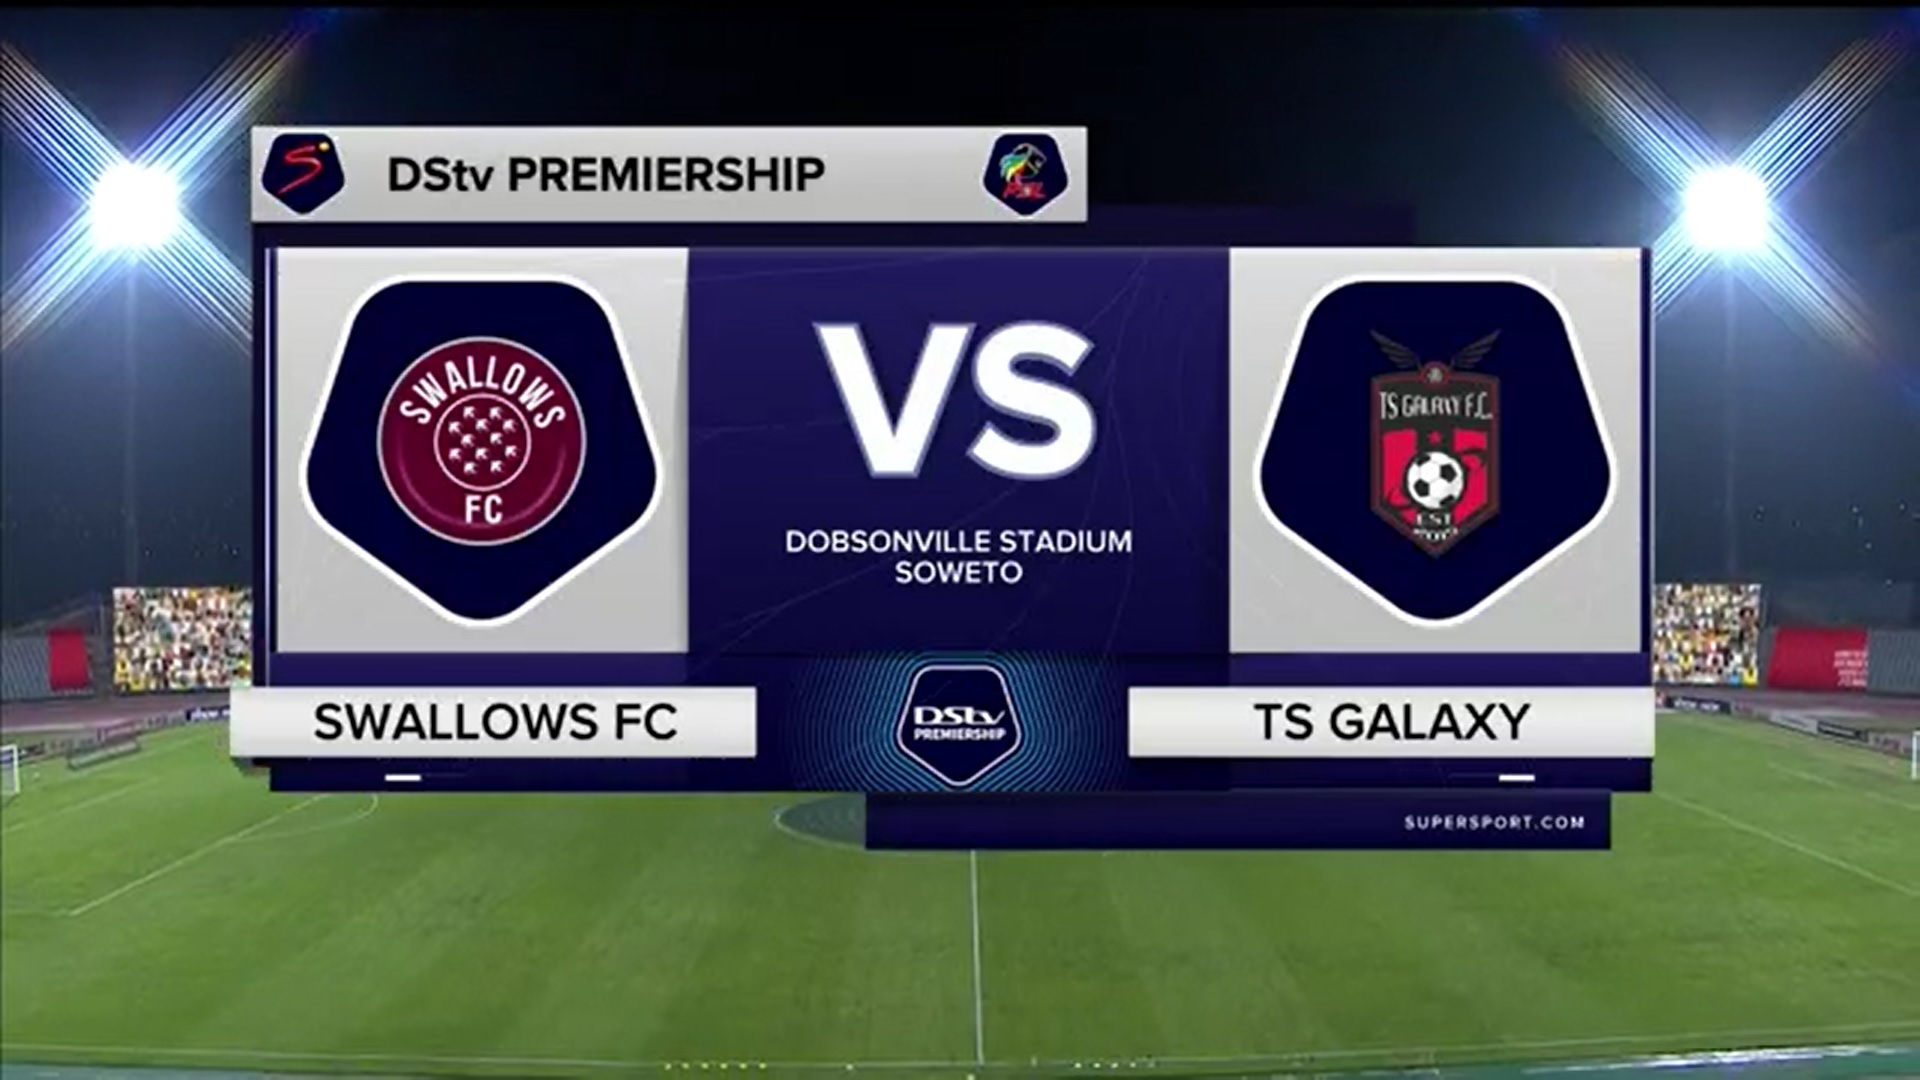 DStv Premiership | Swallows FC v TS Galaxy FC | Highlights